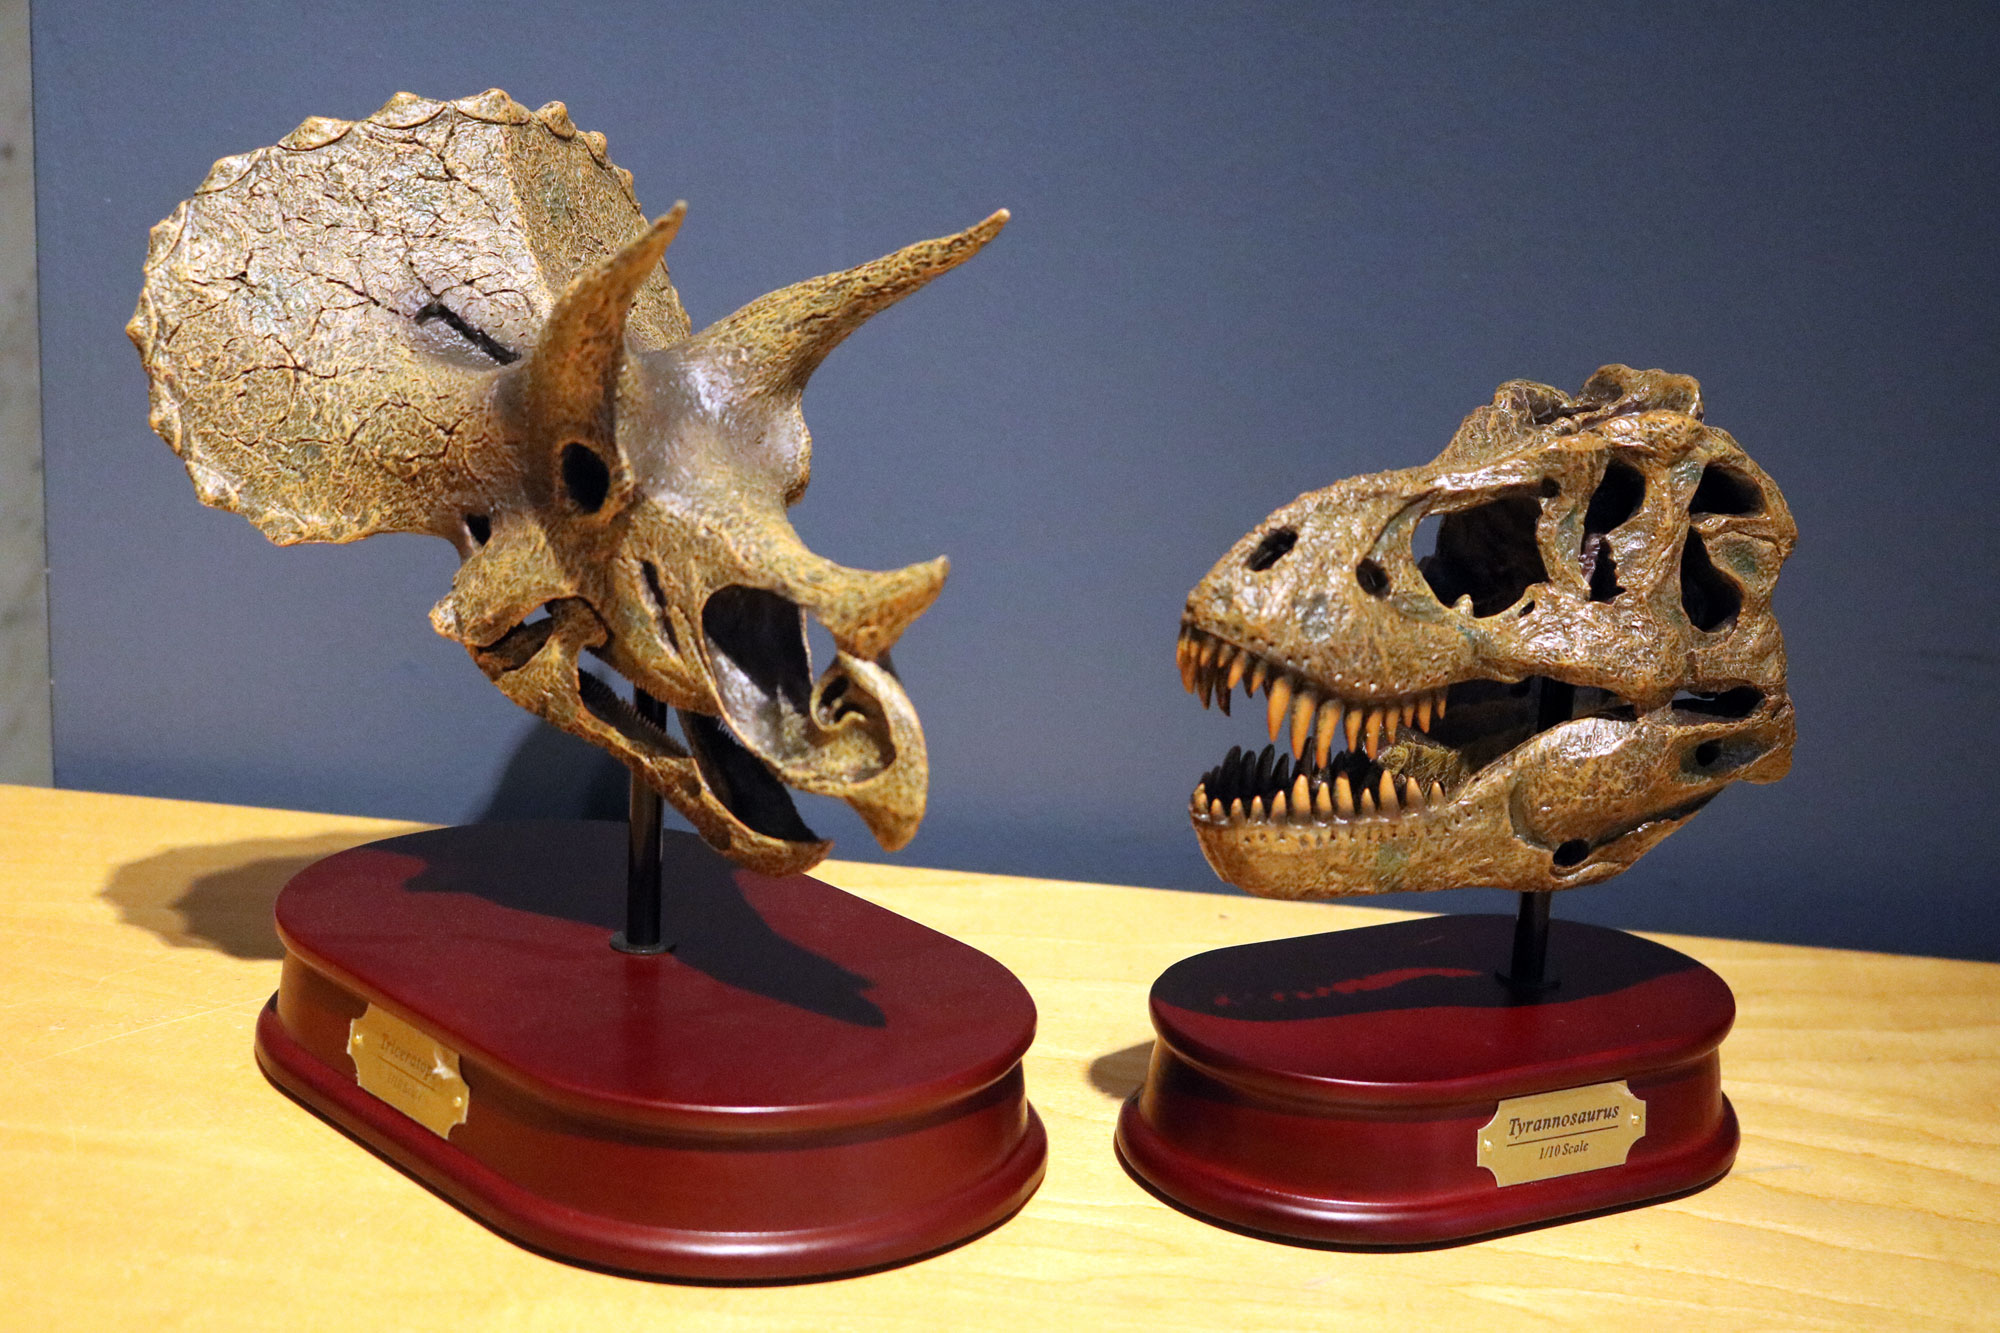 Triceratops and T. rex skull models